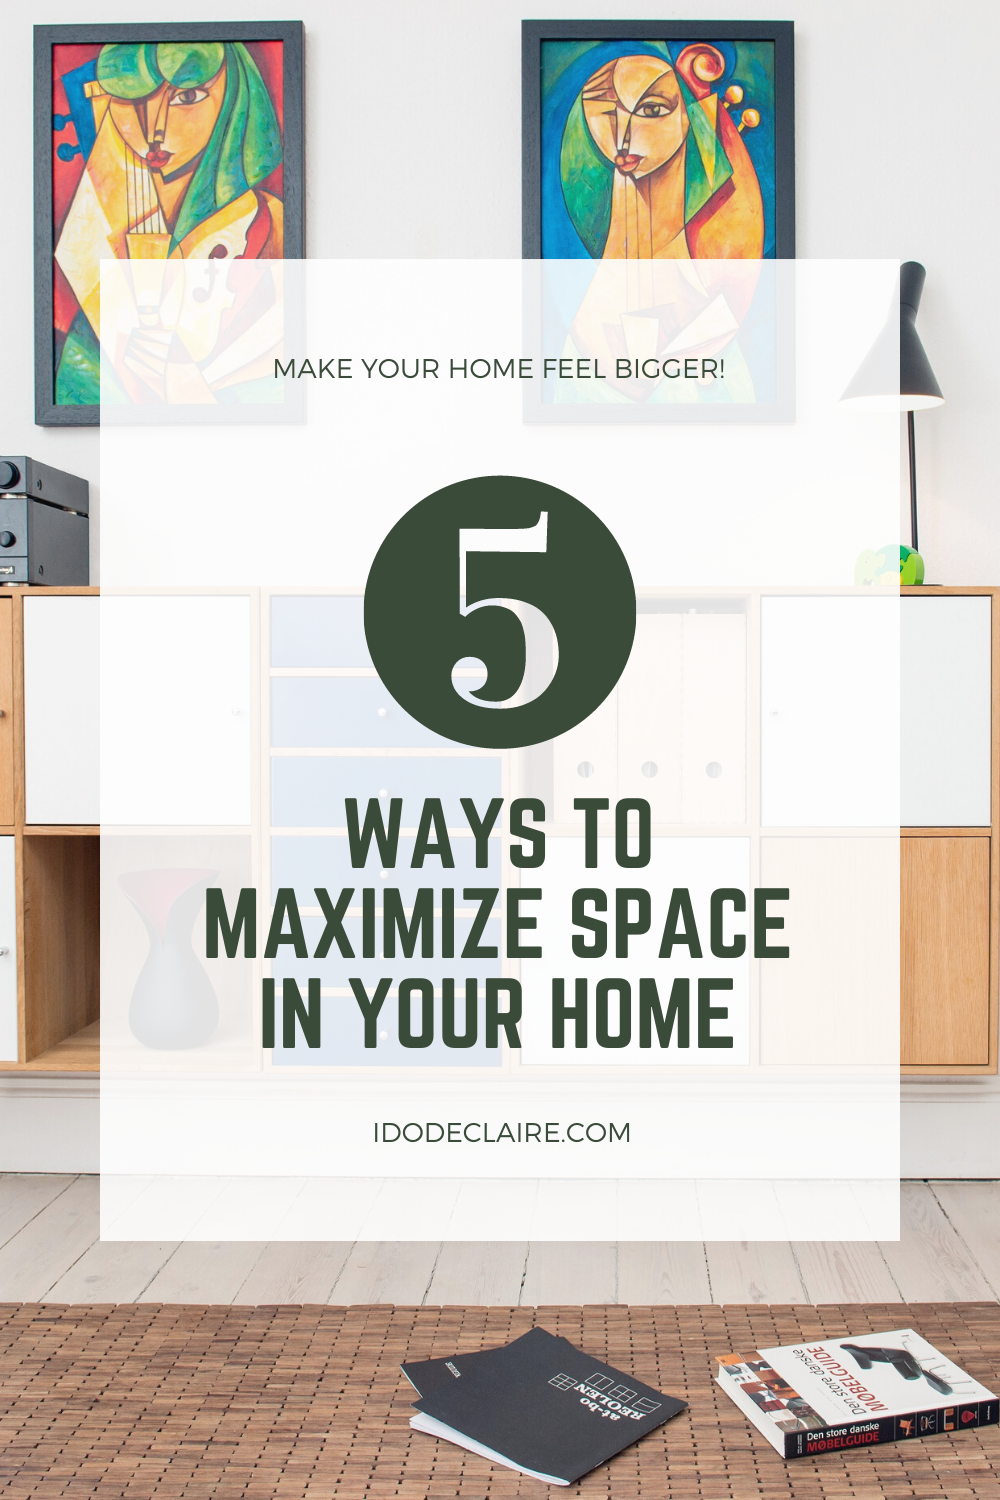 4 Ways to Maximize Space in Your Home